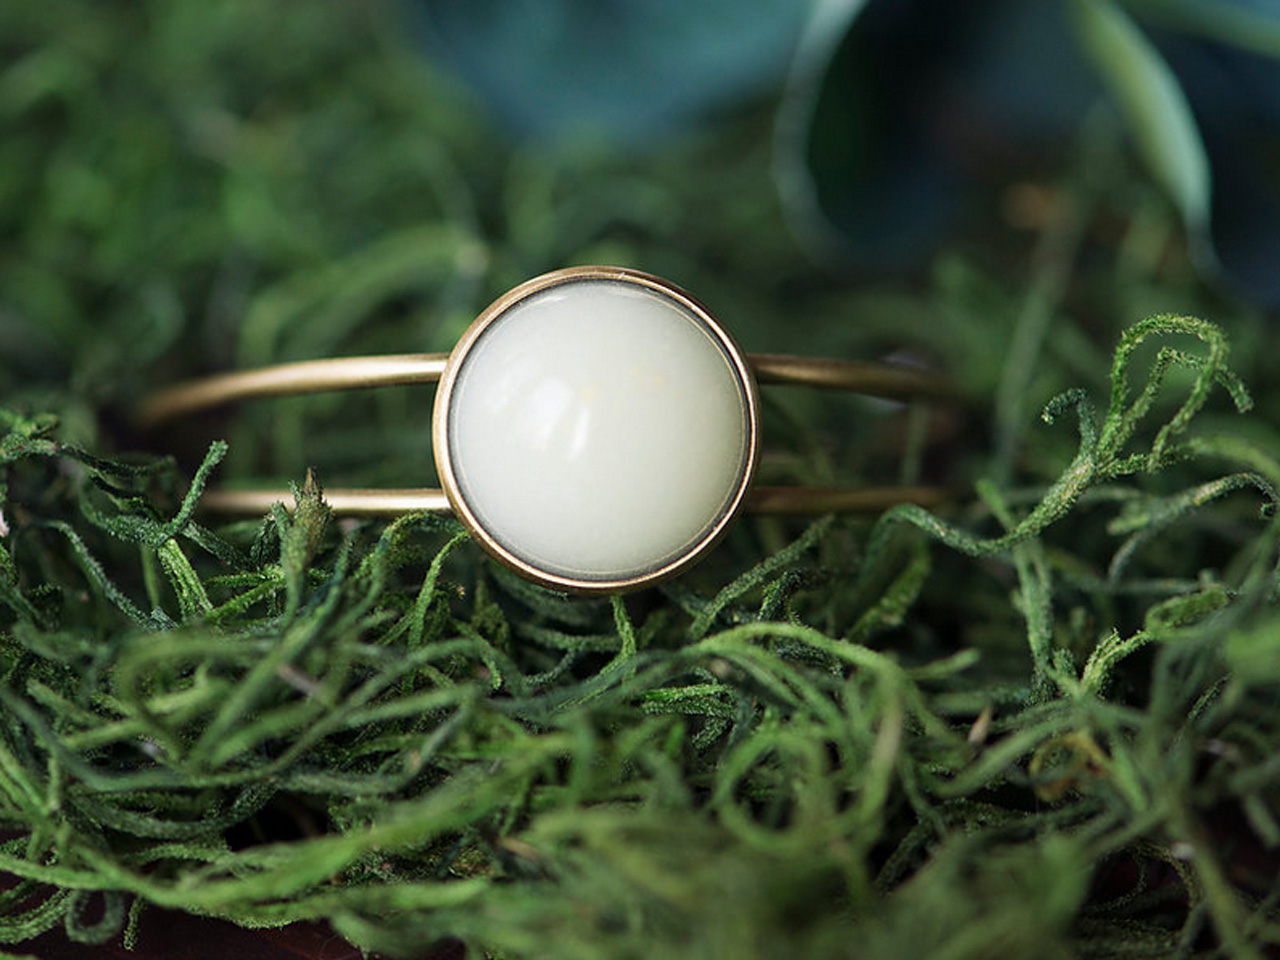 Bronze cuff bracelet with white opaque stone in the middle